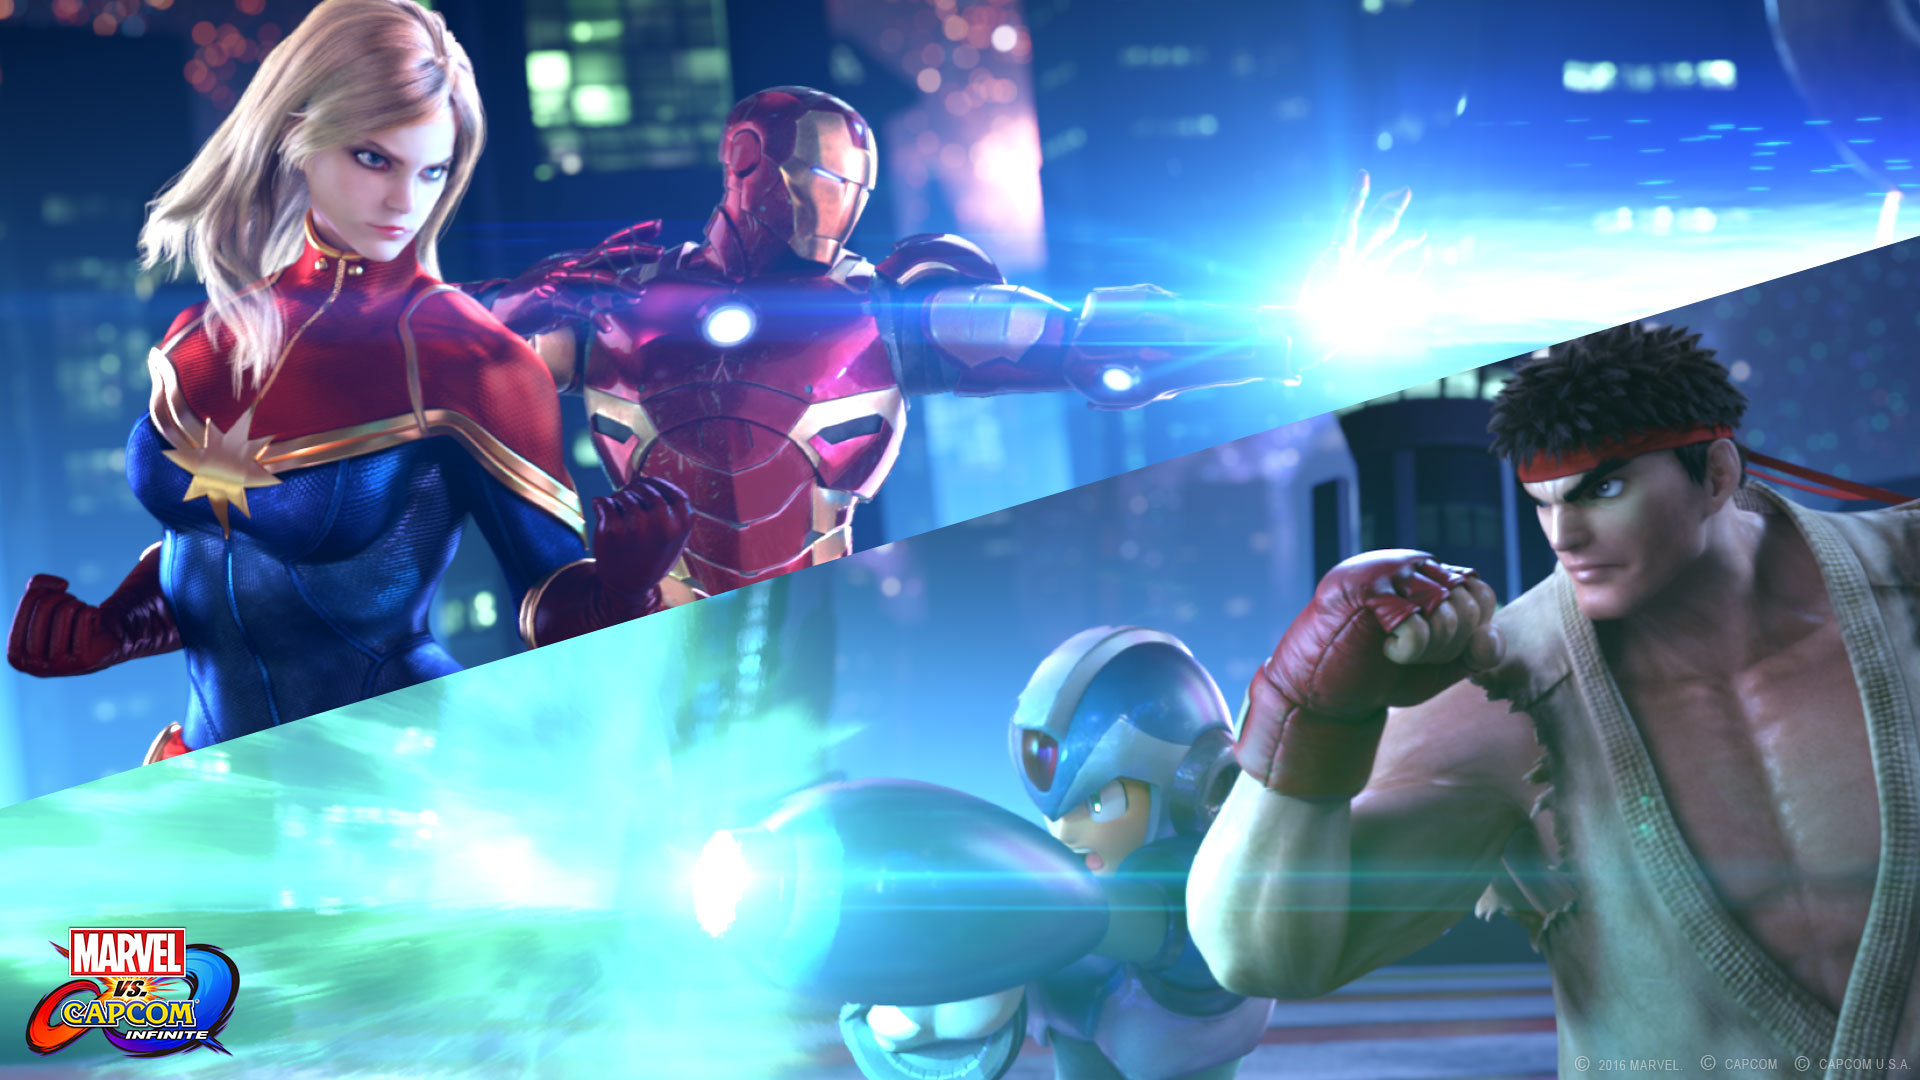 Marvel vs. Capcom Infinite's 4 Remaining DLC Characters Revealed